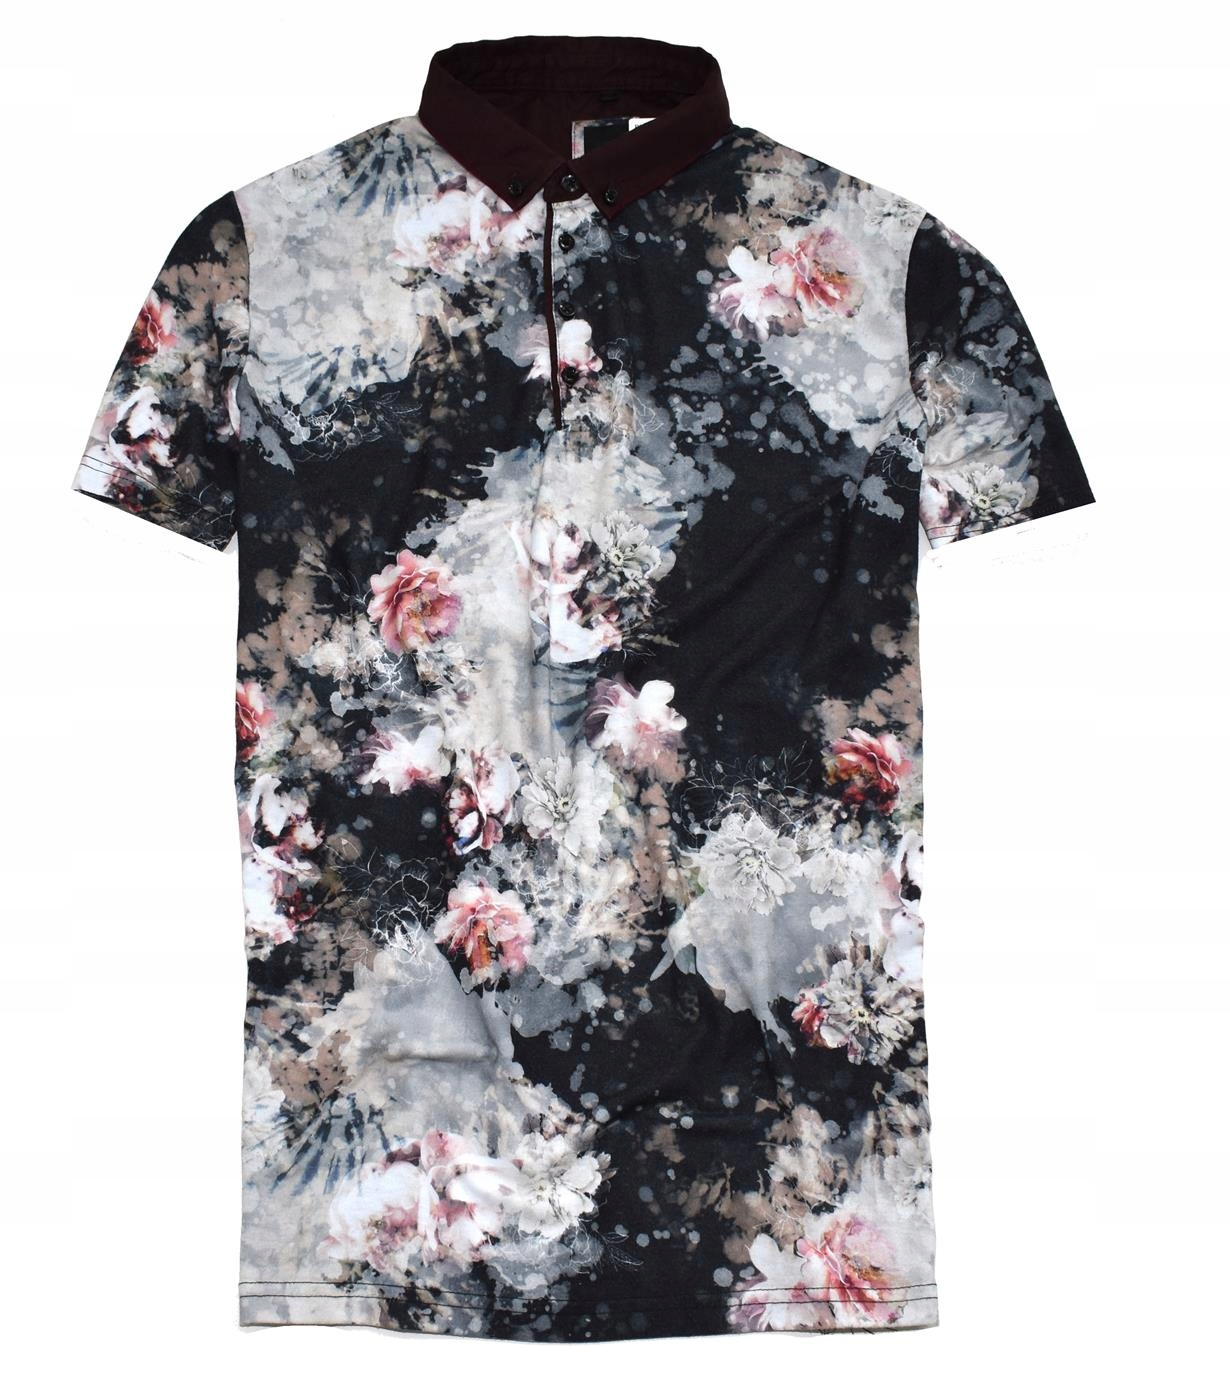 MM 91 RIVER ISLAND_TRENDY ABSTRACT FLOWERS POLO_XL